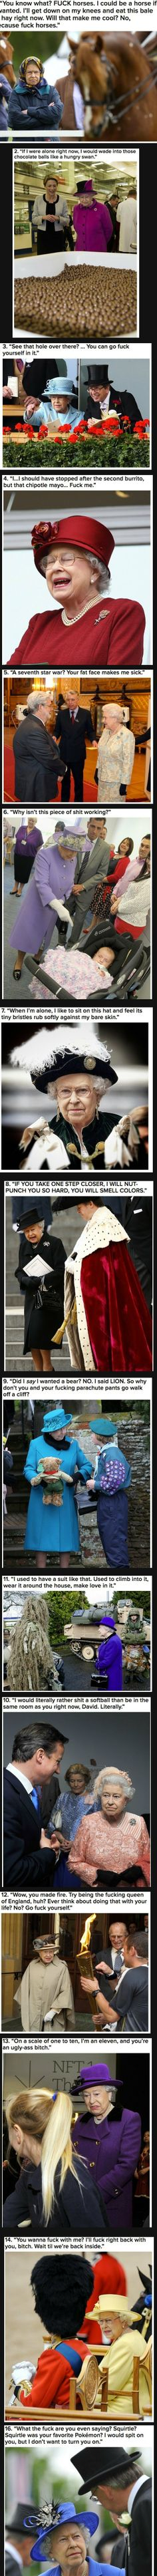 Queen of England can reck your shit  // funny pictures - funny photos - funny images - funny pics - funny quotes - #lol #humor #funnypictures